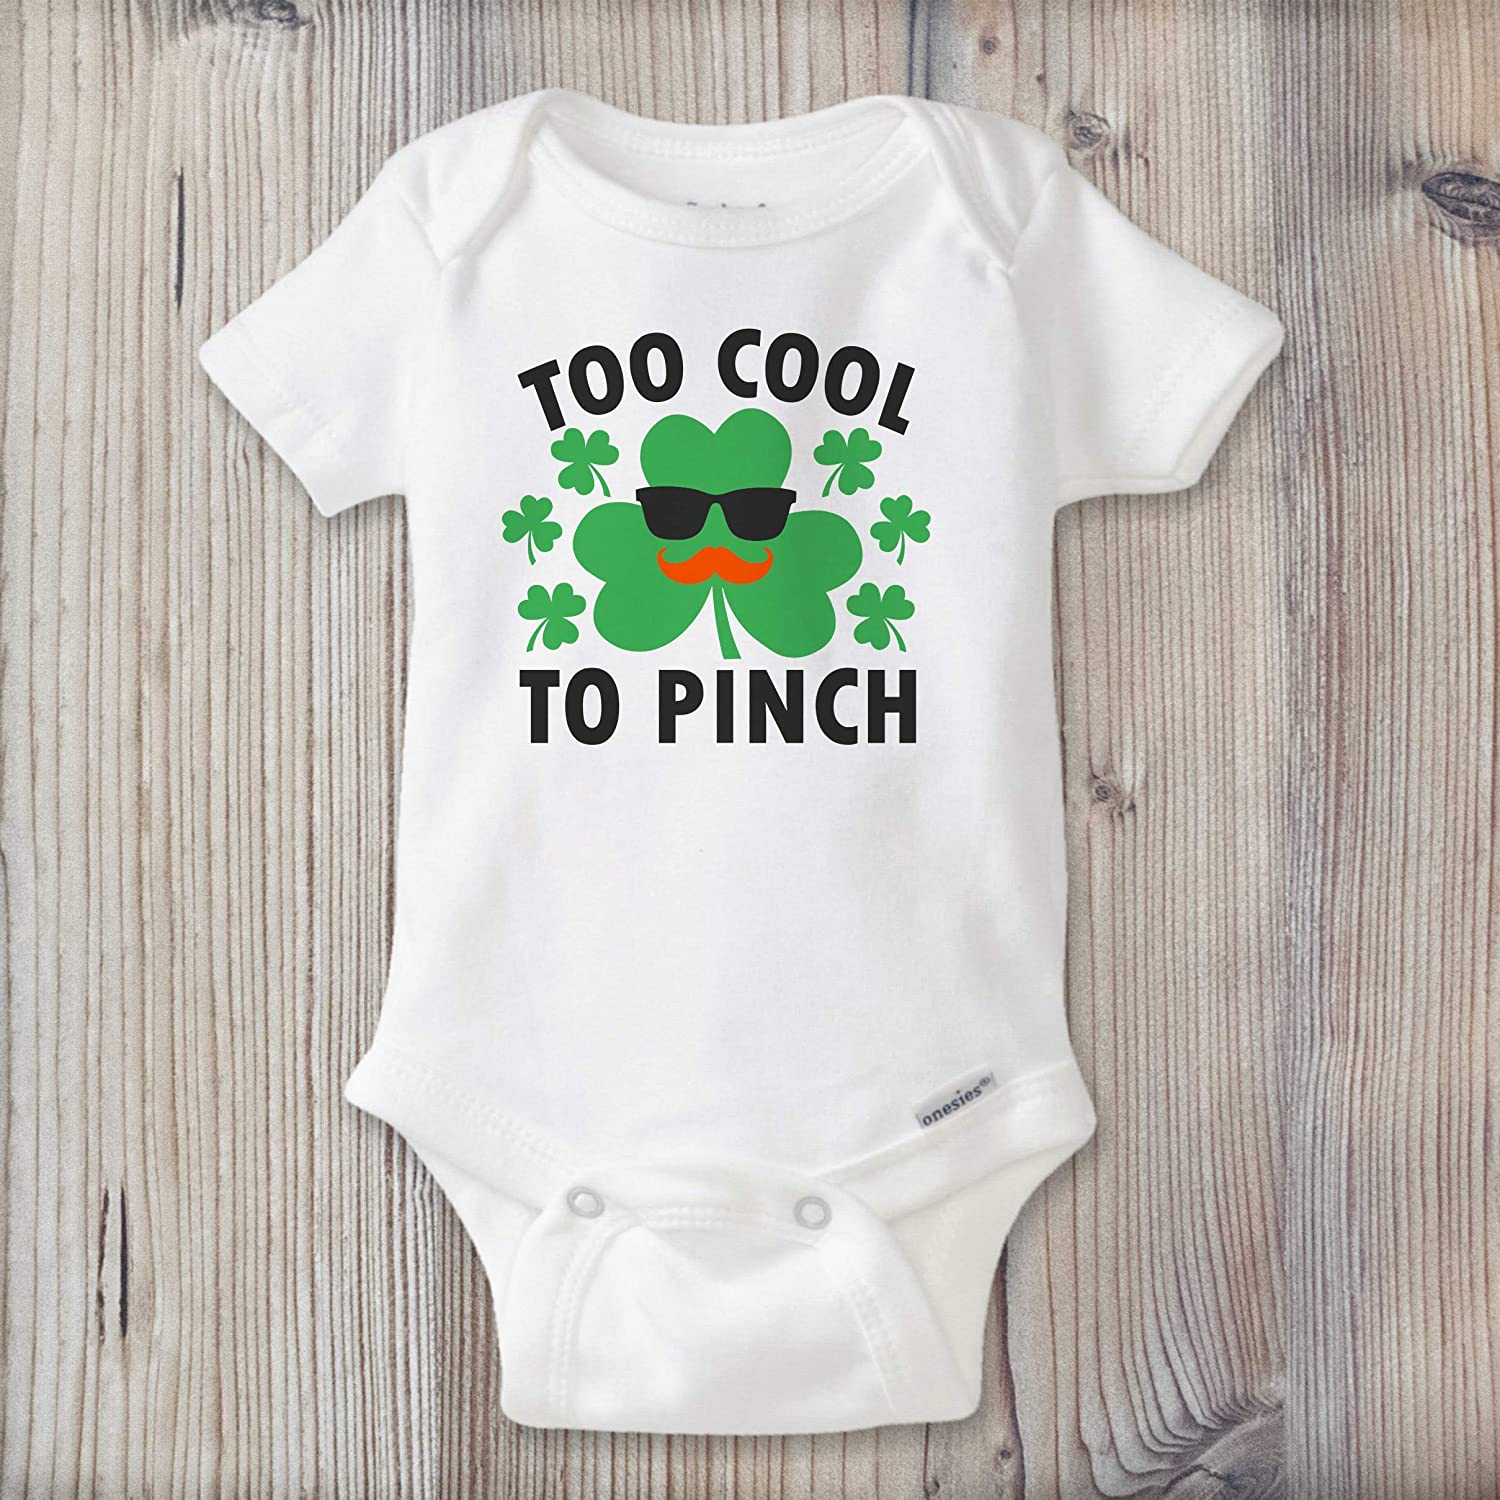 f405cc7e6 Amazon.com: St. Patricks Baby Onesie® or Toddler T-Shirt | Irish Baby  Bodysuit | Unisex Baby Clothes | St. Patty's Day Outfit | Too Cool To  Pinch: Handmade